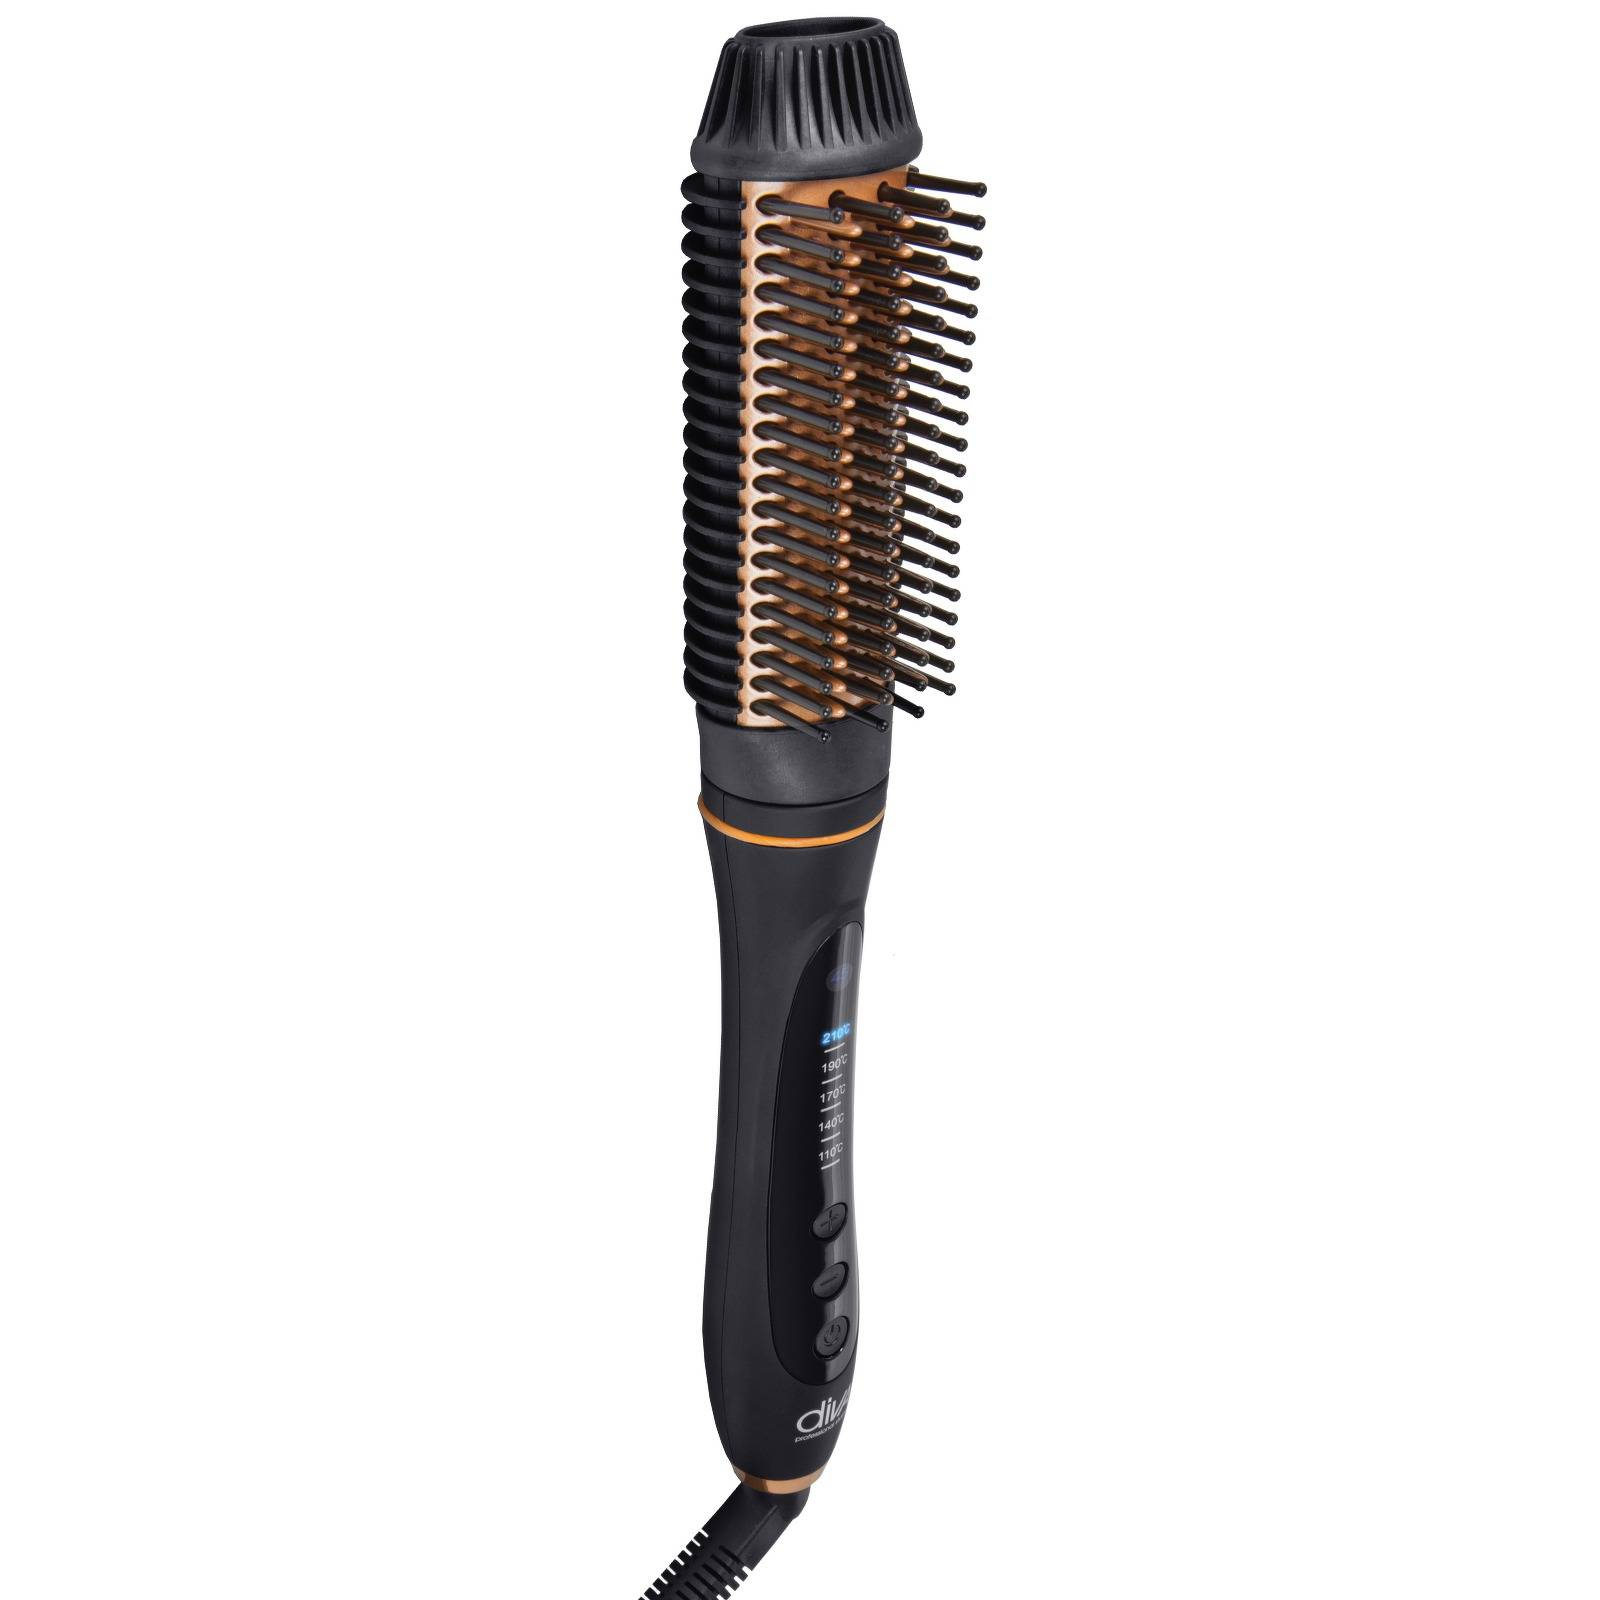 Diva Professional Styling - Accessories Radiant Shine Straight & Style Speed Brush Pro for Women